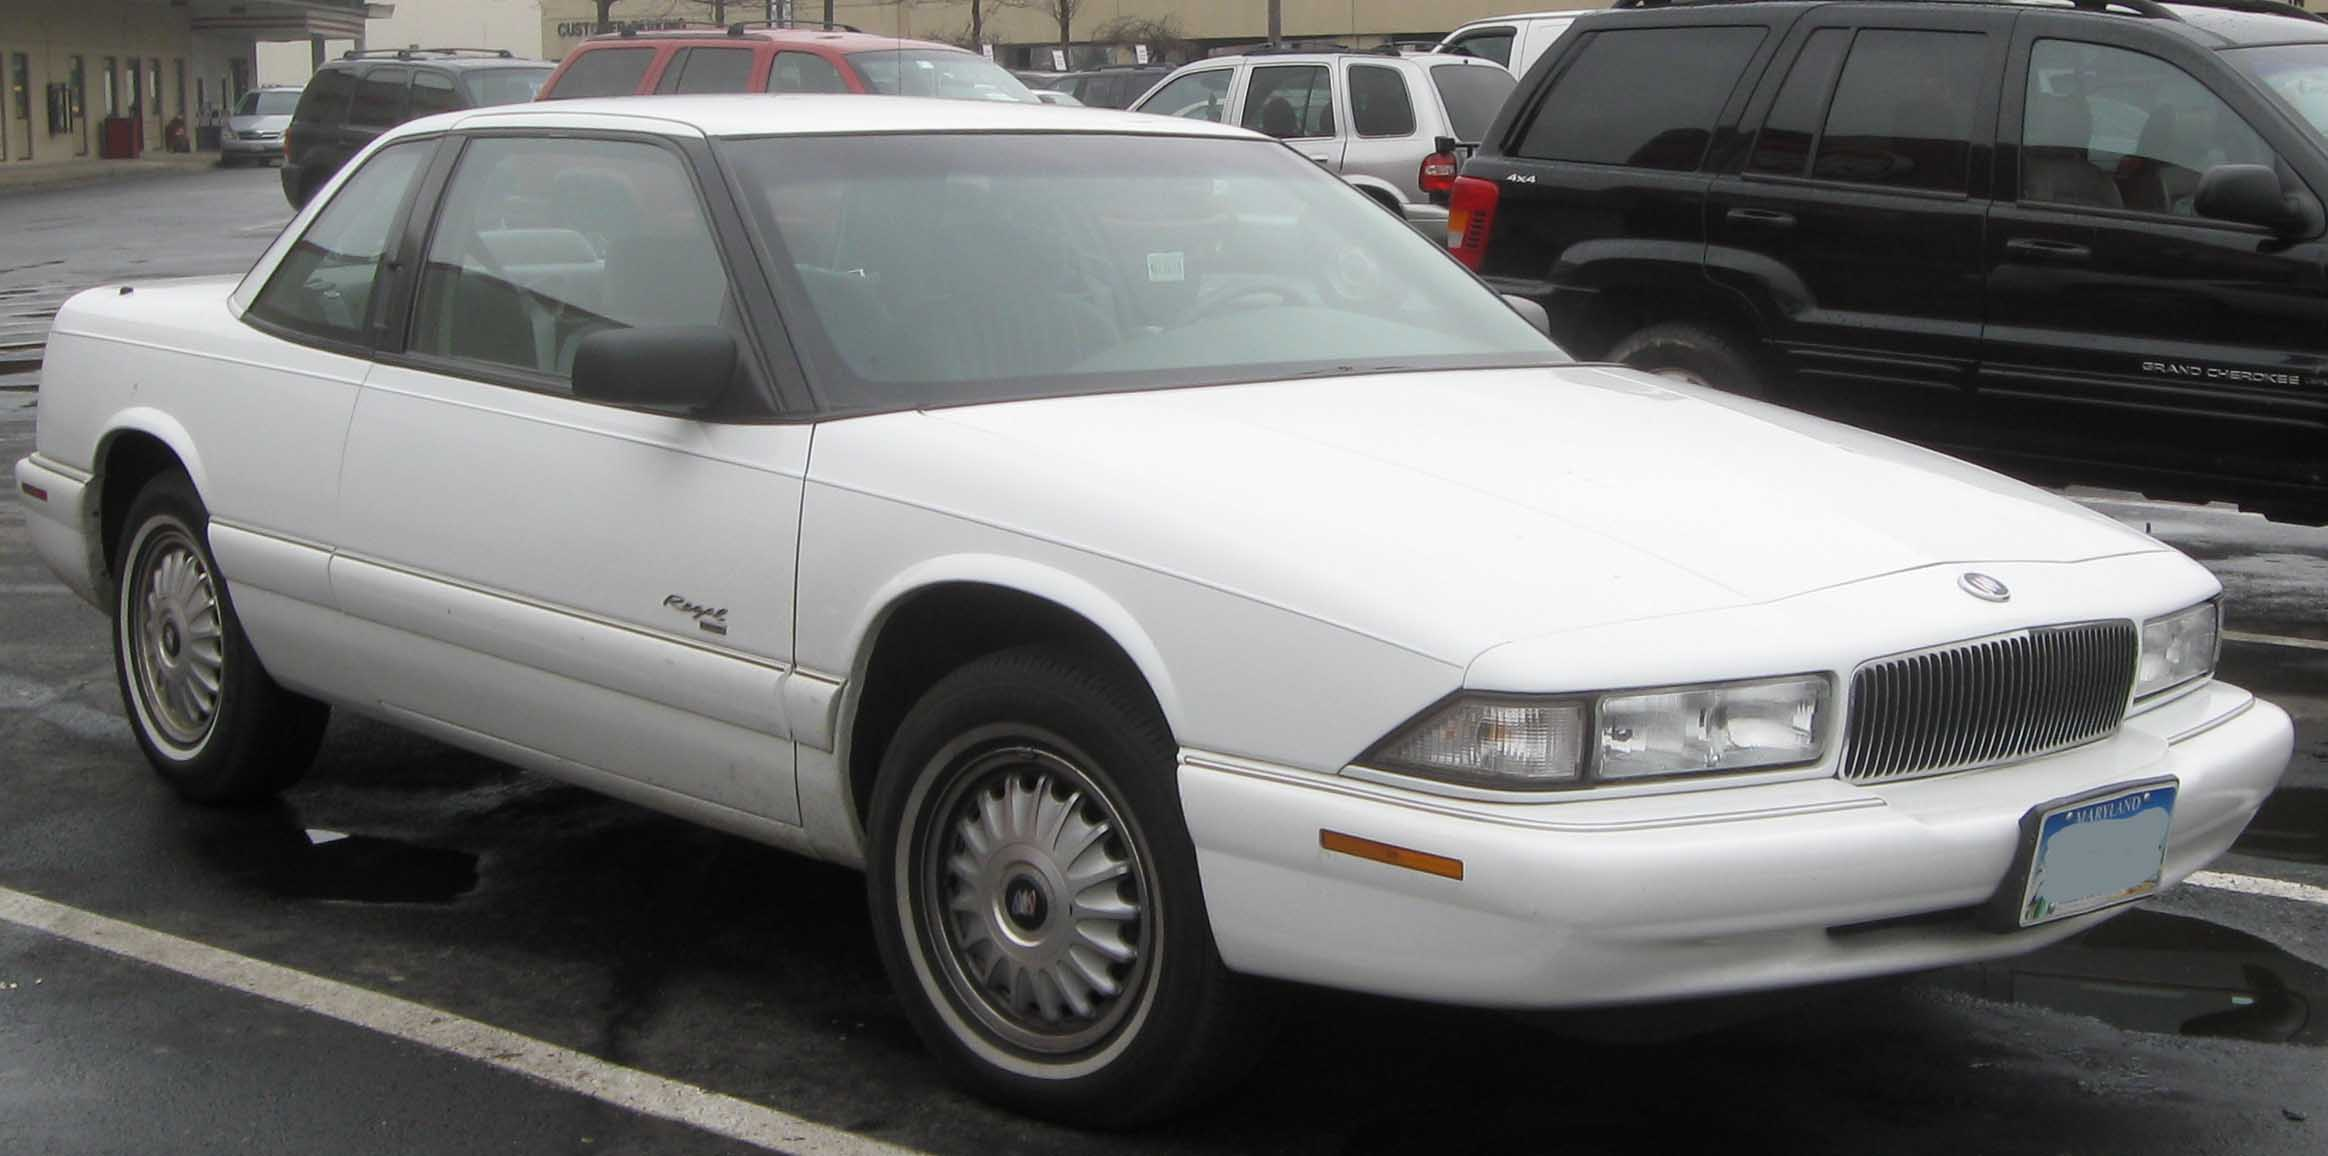 1995 Buick Regal #11